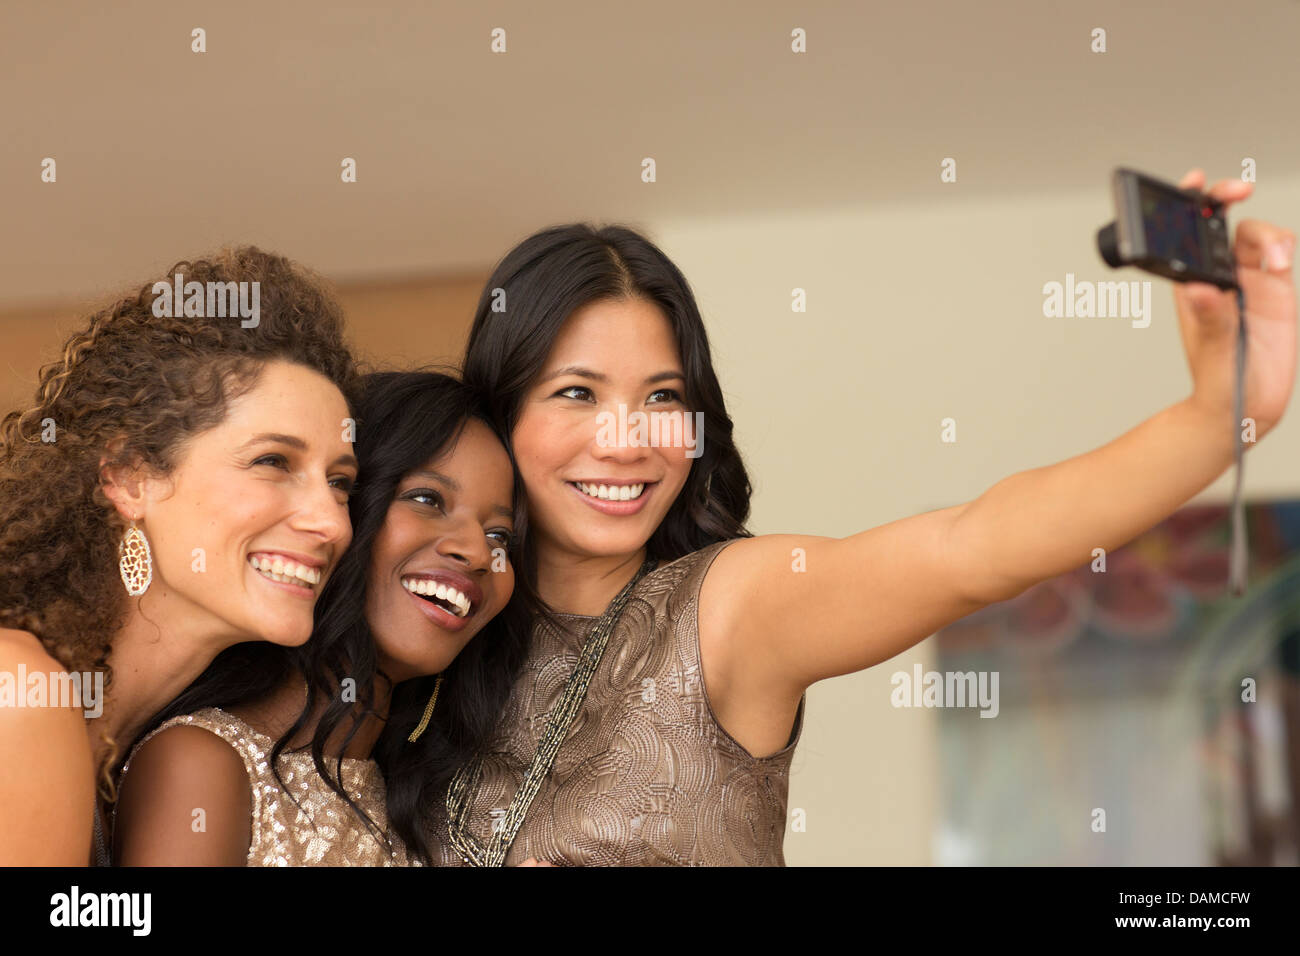 Women taking picture together indoors - Stock Image